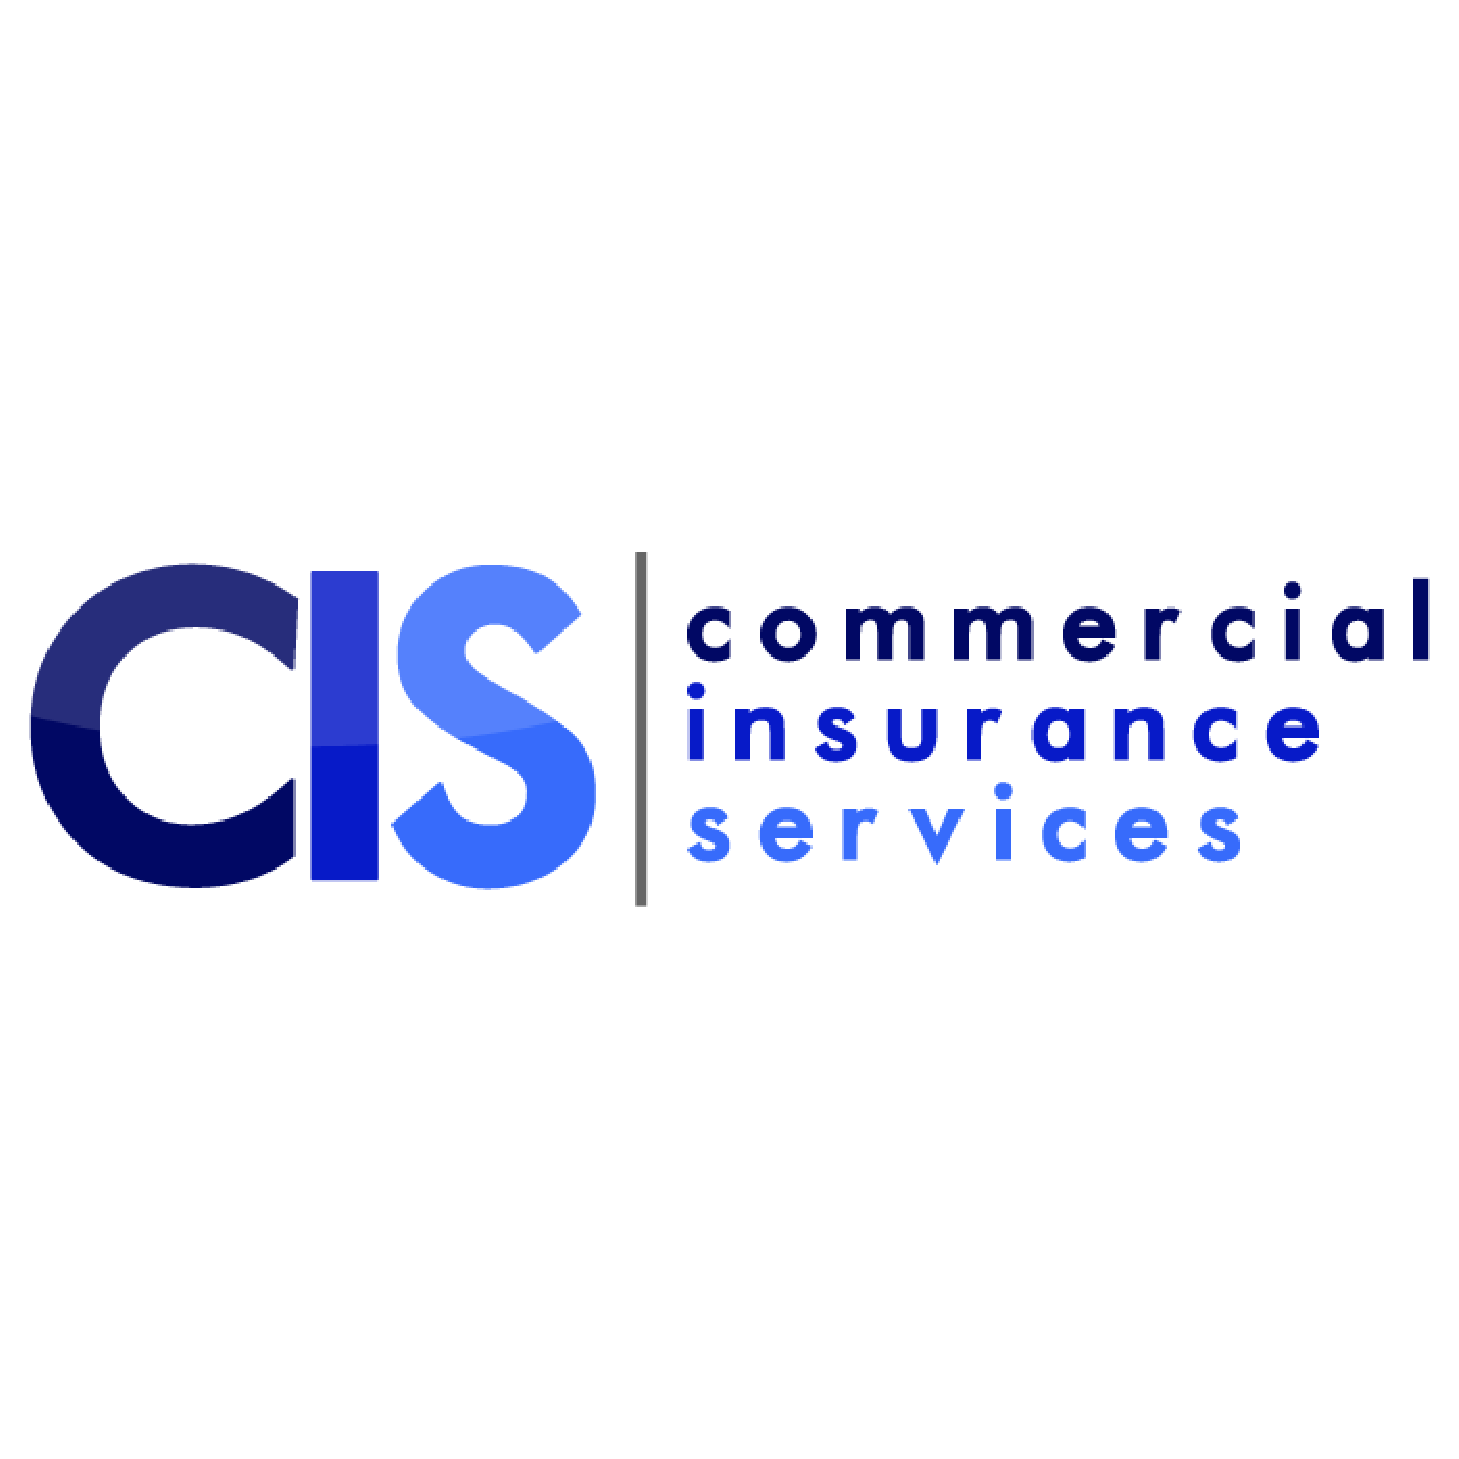 CIS Commercial Insurance Services LLC